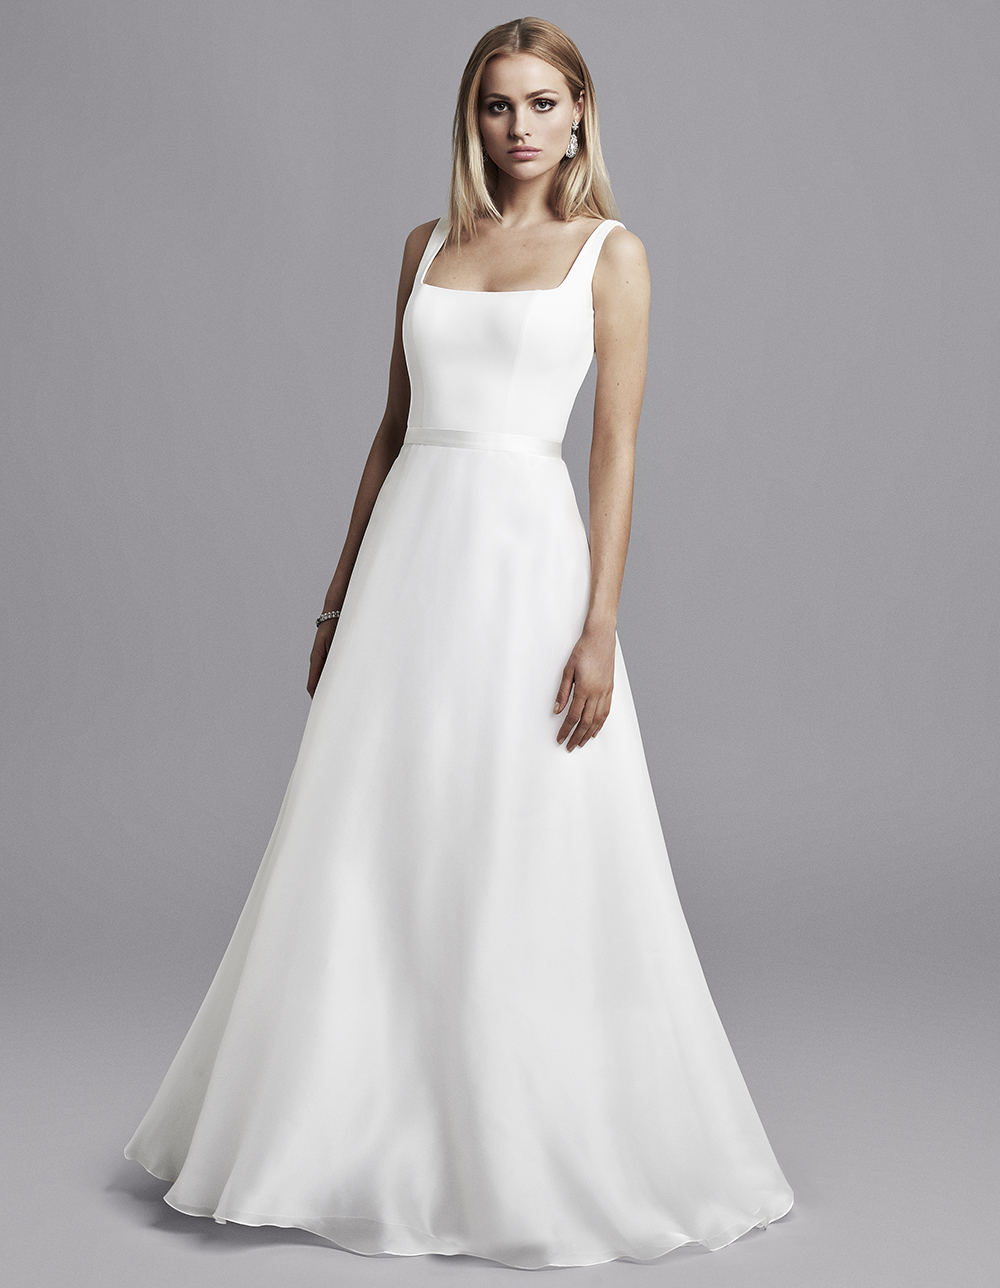 Finding The Right Wedding Dress Shape For Your Body Caroline Castigliano,A Simple White Wedding Dress